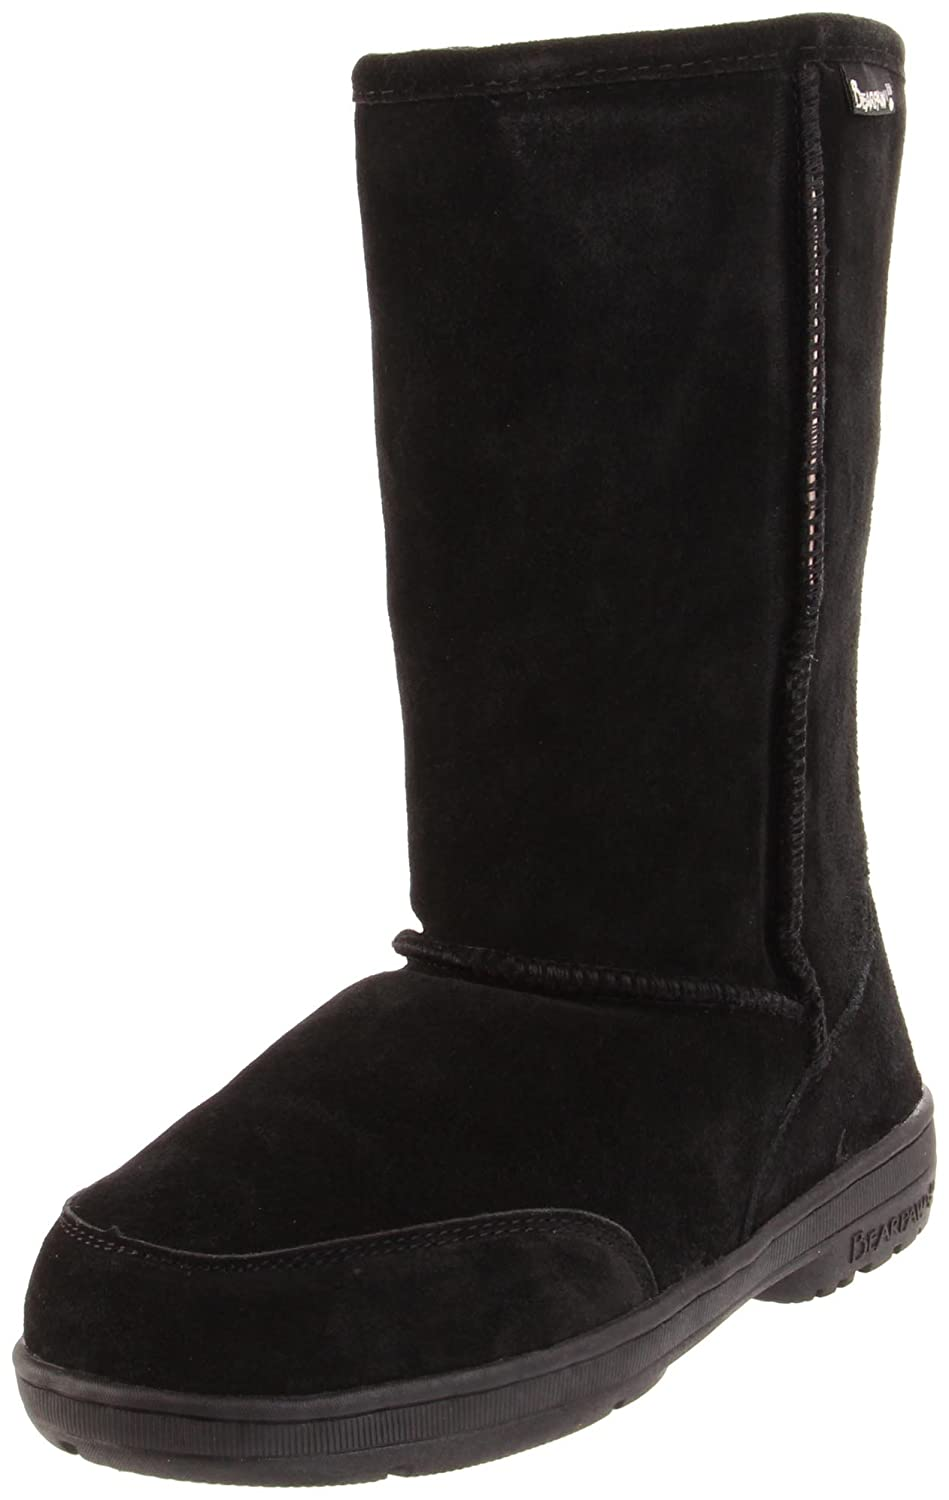 BEARPAW Women's Meadow Mid Calf Boot B01N5QXWQN 41 M EU|Black